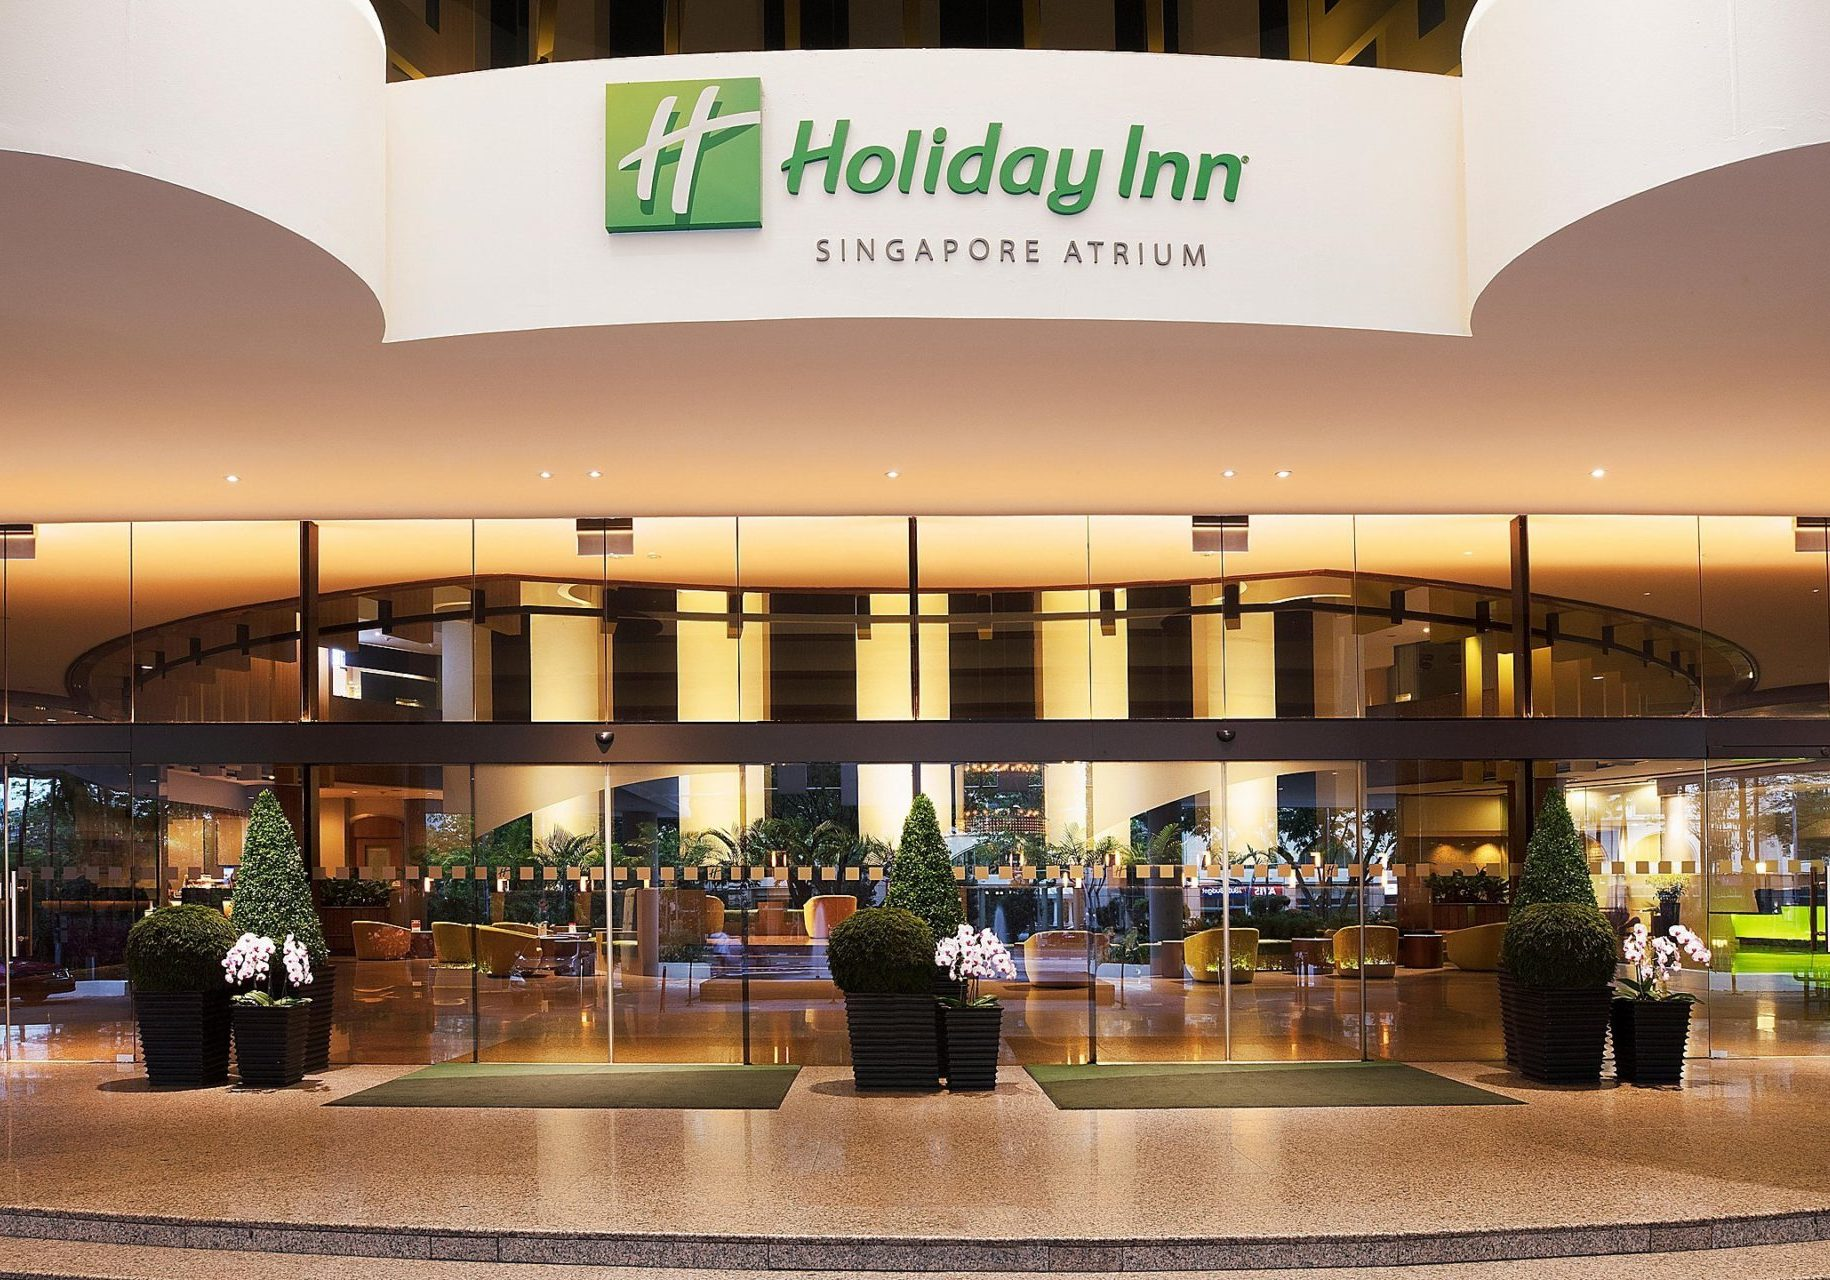 holiday-inn-singapore-4997495258-2x1